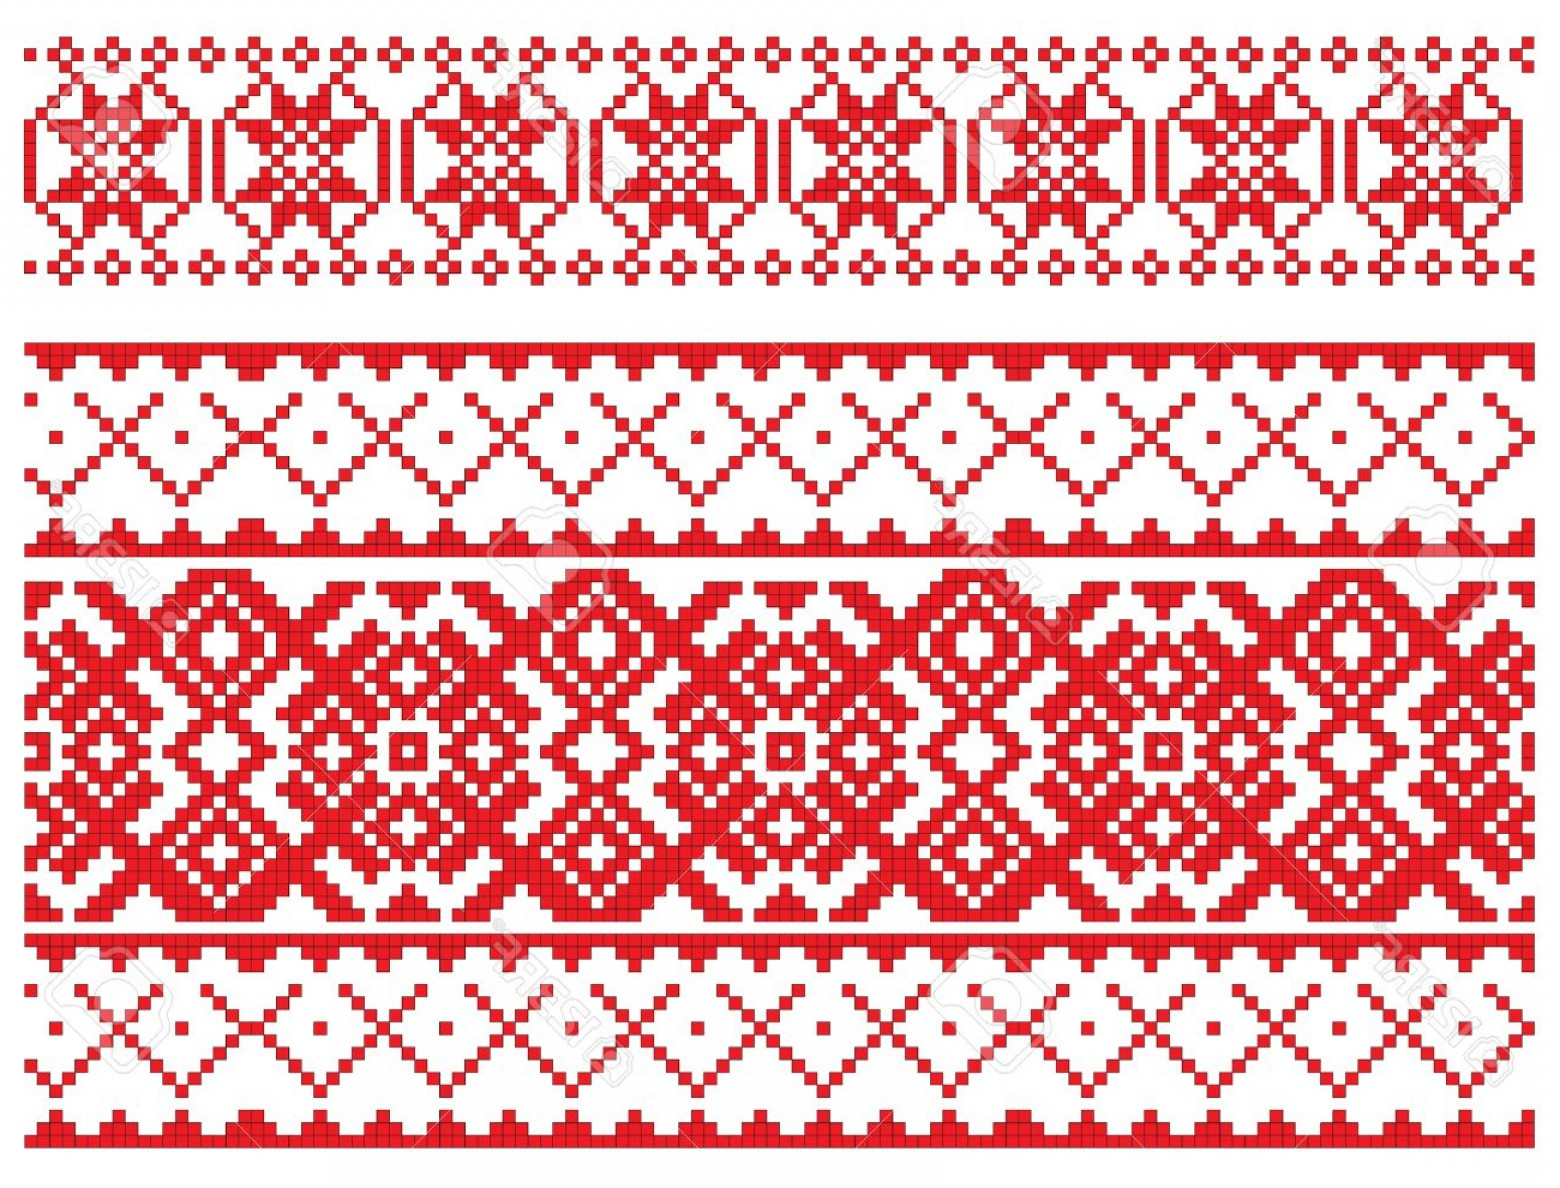 Russian Patterns Vector: Photothere Is A Scheme Of Russian Pattern For Embroidery